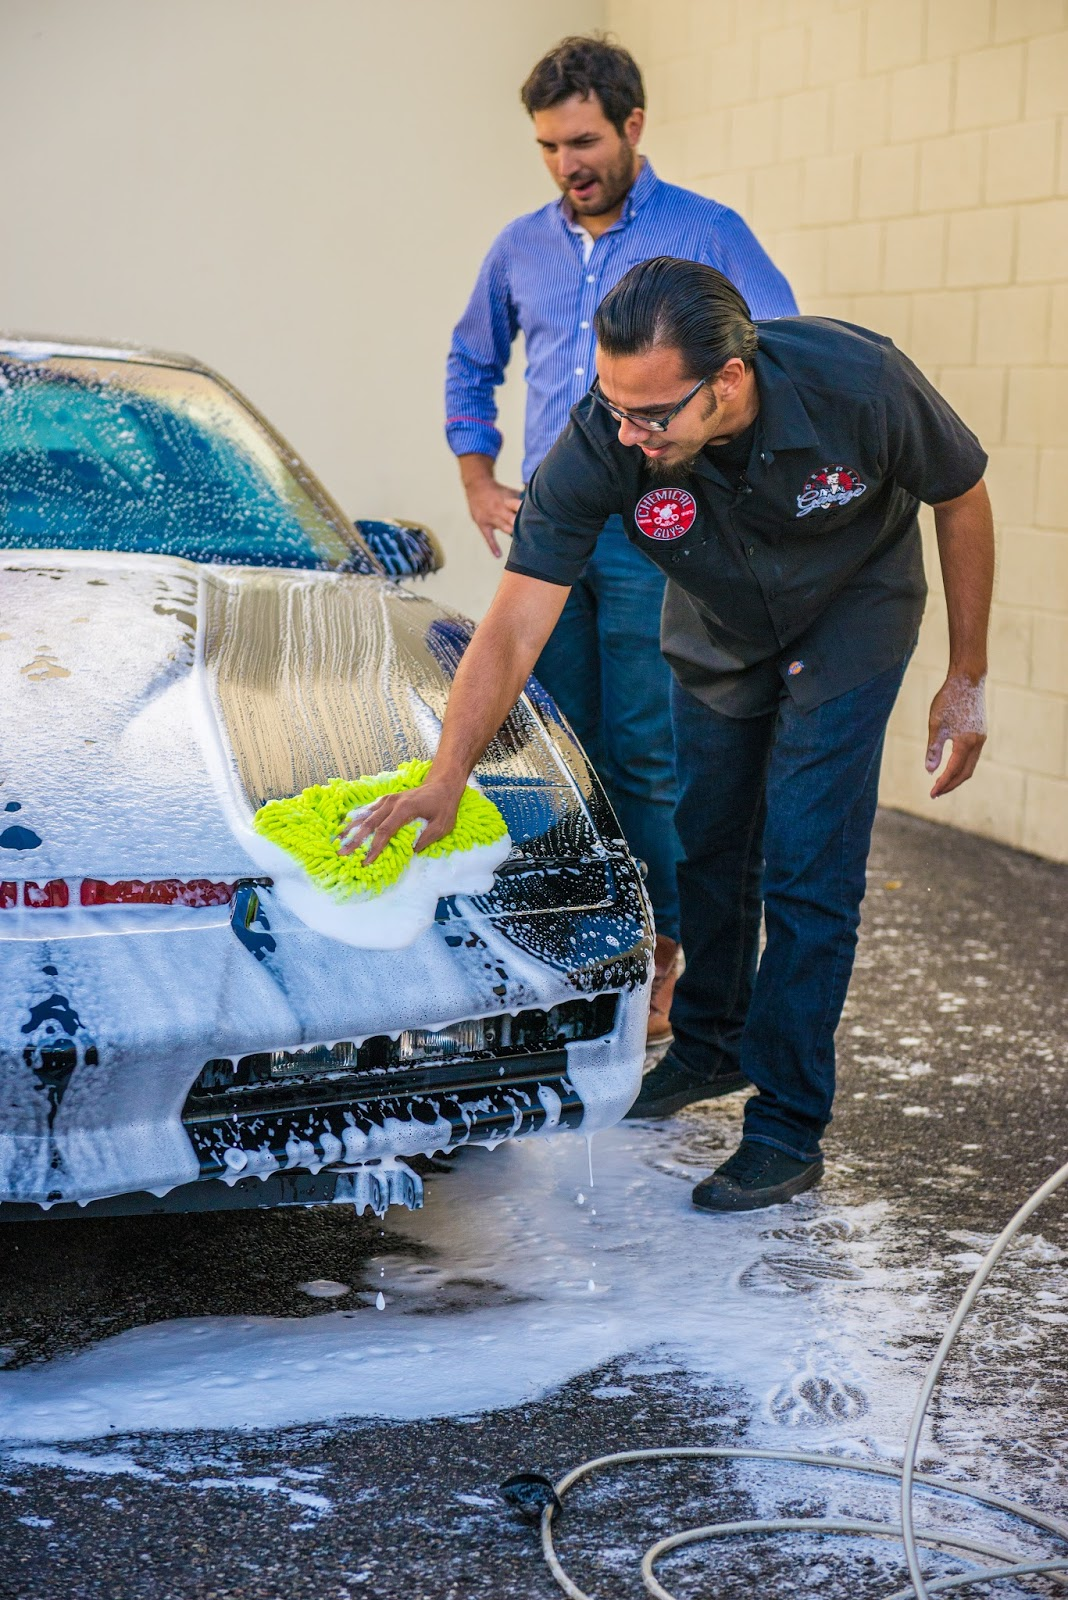 Foam Cannon Soap >> Chemical Guys Auto Detailing & Car Washing Supplies: Introducing Chemical Guys Black Light Car ...